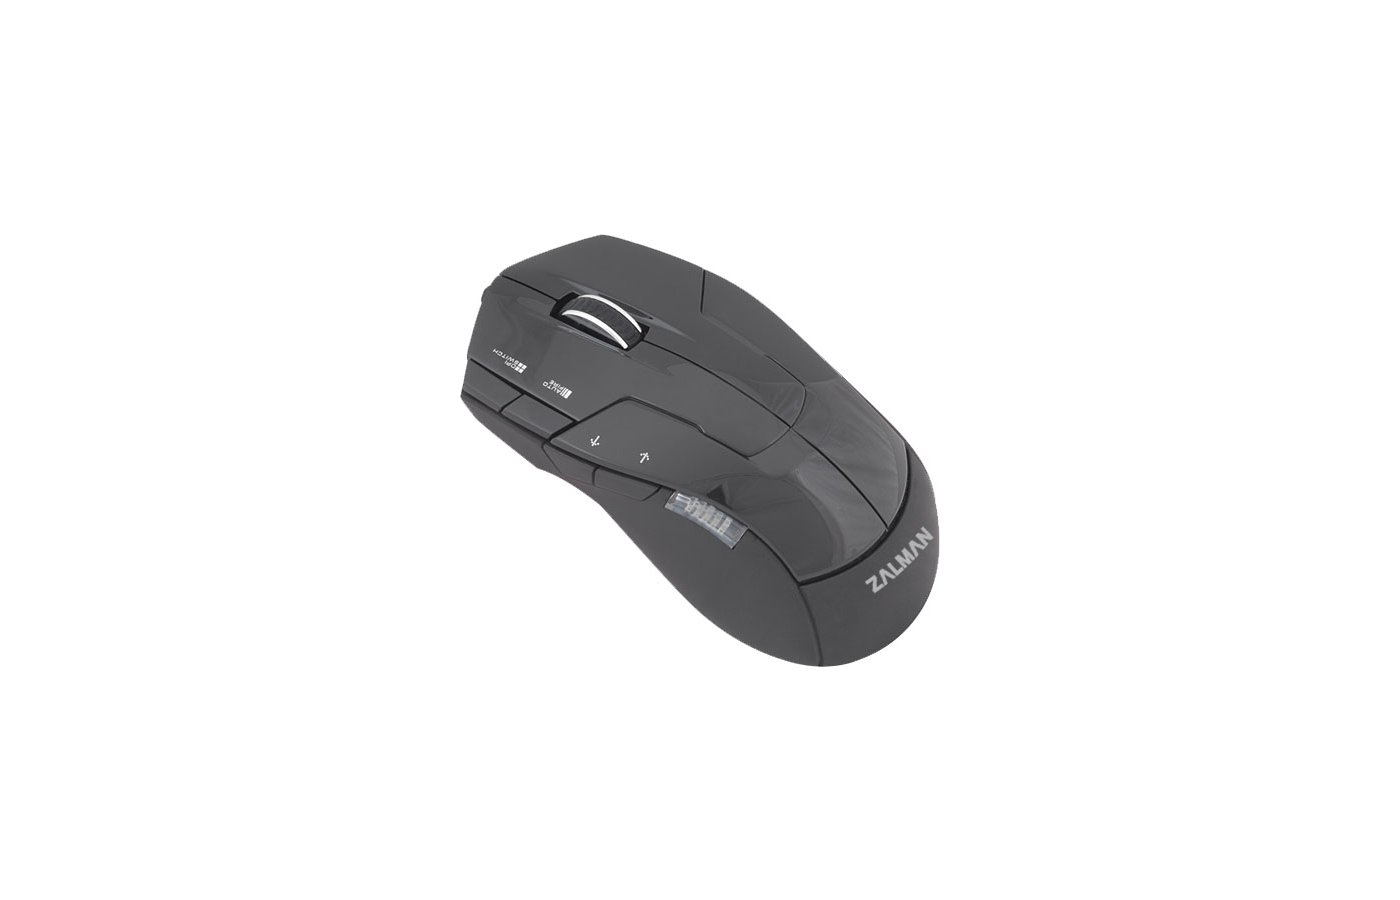 Мышь проводная Zalman ZM-M300 USB 2500dpi Gaming mouse 7x multi buttons optical black color